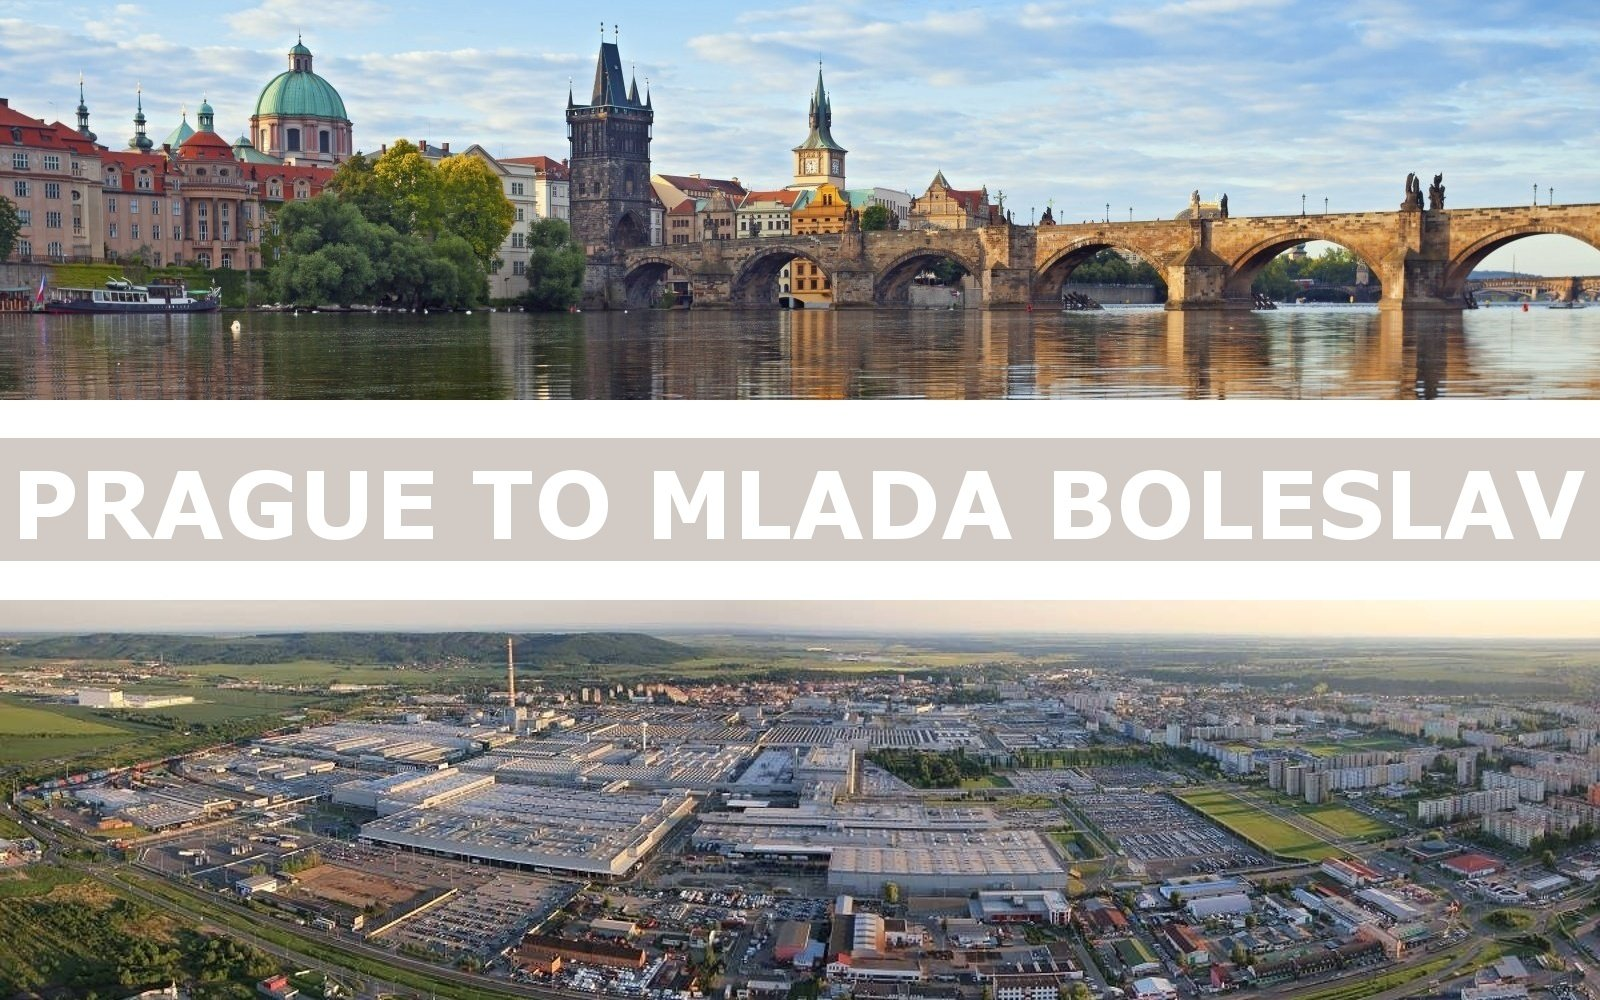 Transportation from Prague to Mlada Boleslav